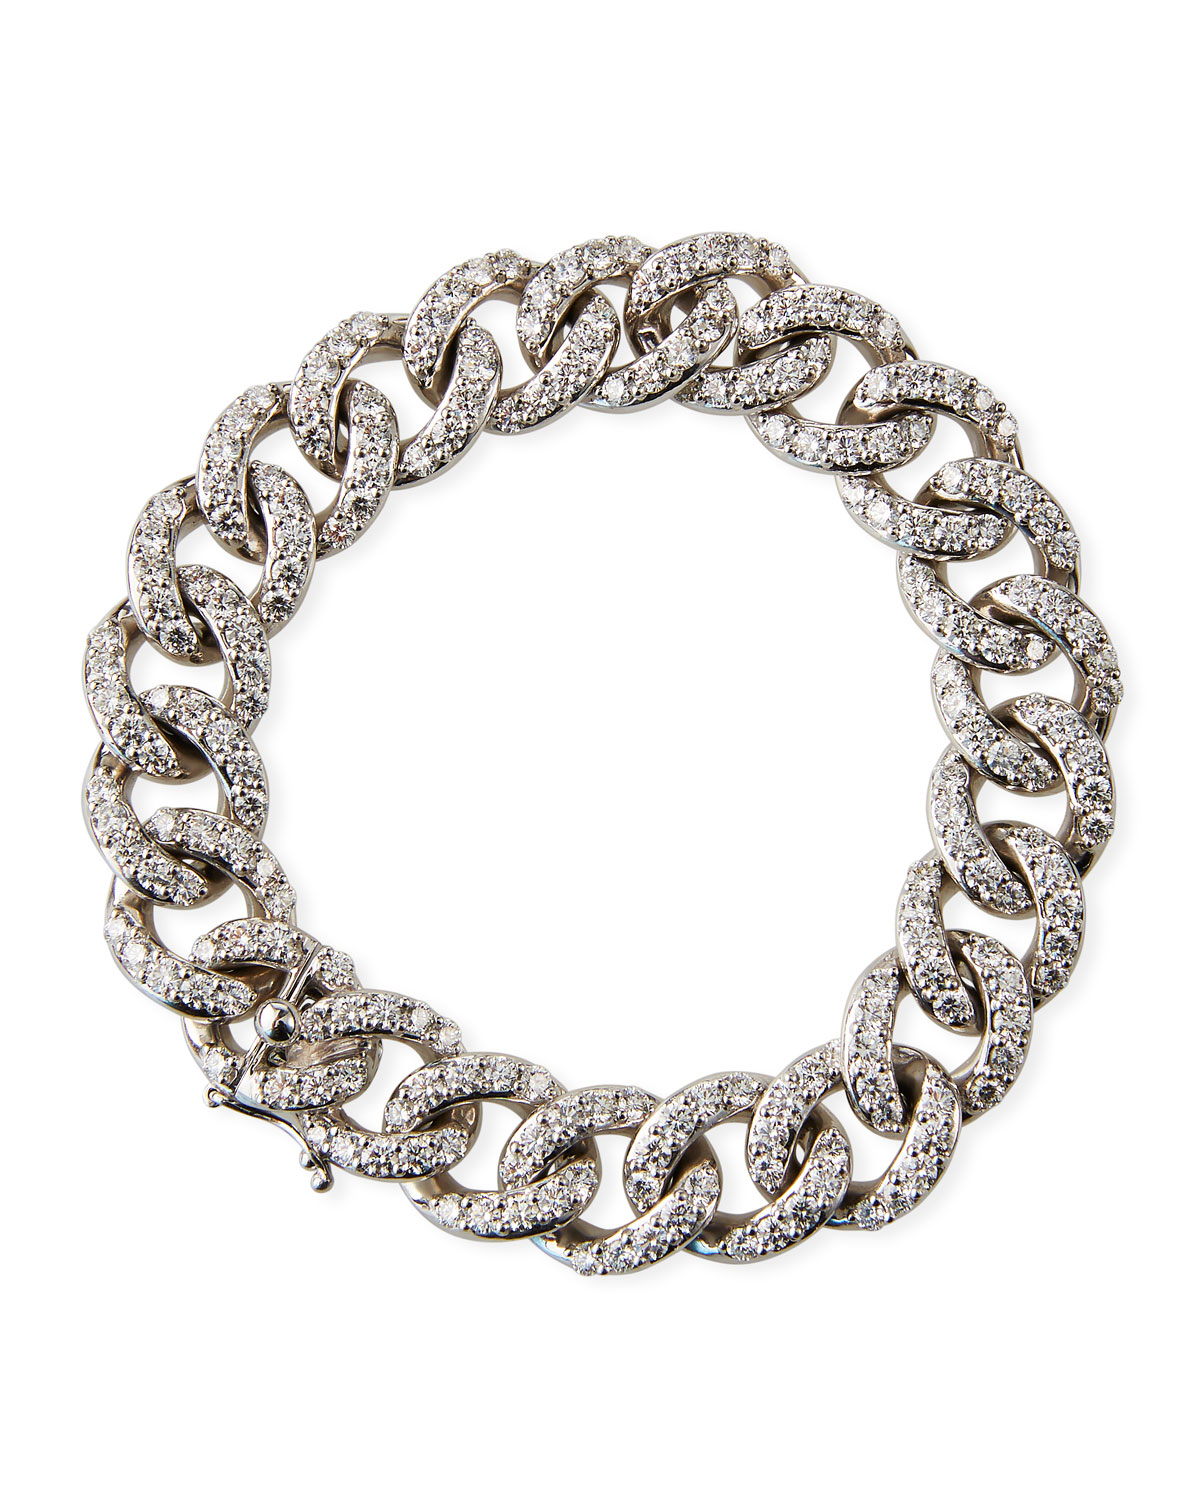 Leo Pizzo 18k White Gold Diamond Curb-Link Bracelet